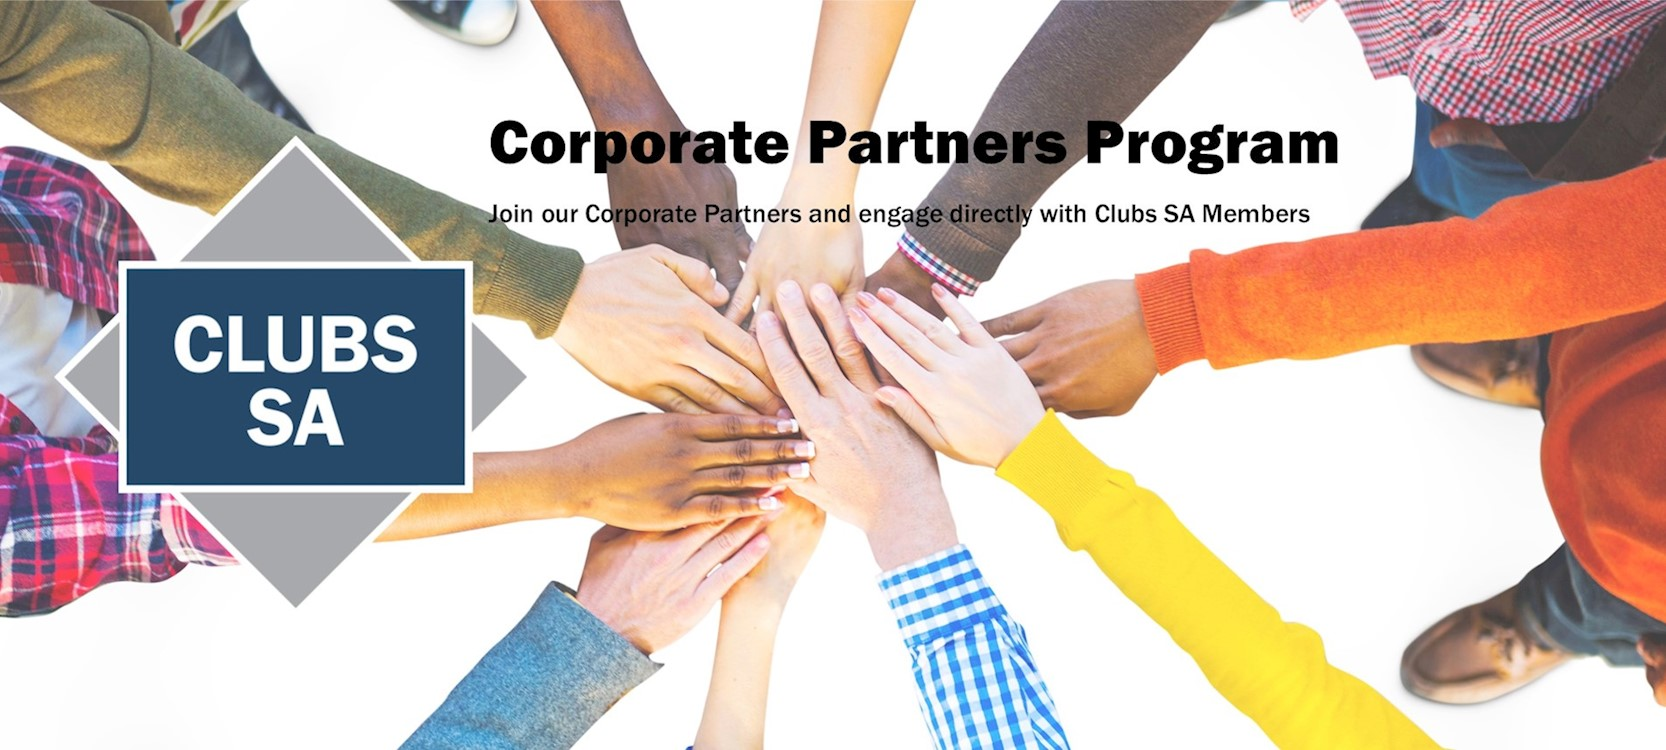 Find out more about Clubs SA's Corporate Partners Program